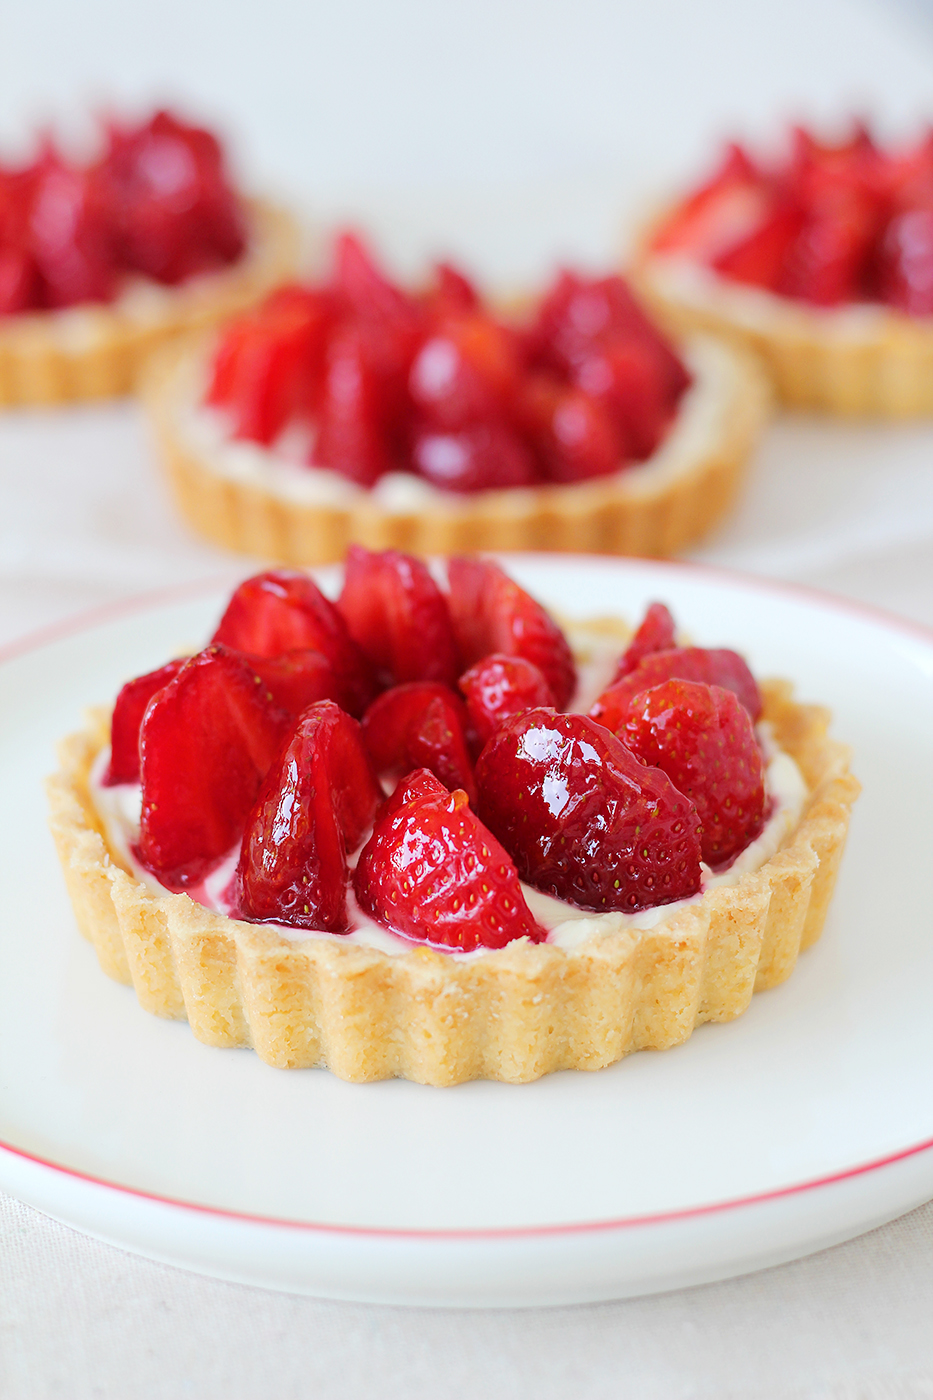 Strawberry tarts forever - Splash of Something